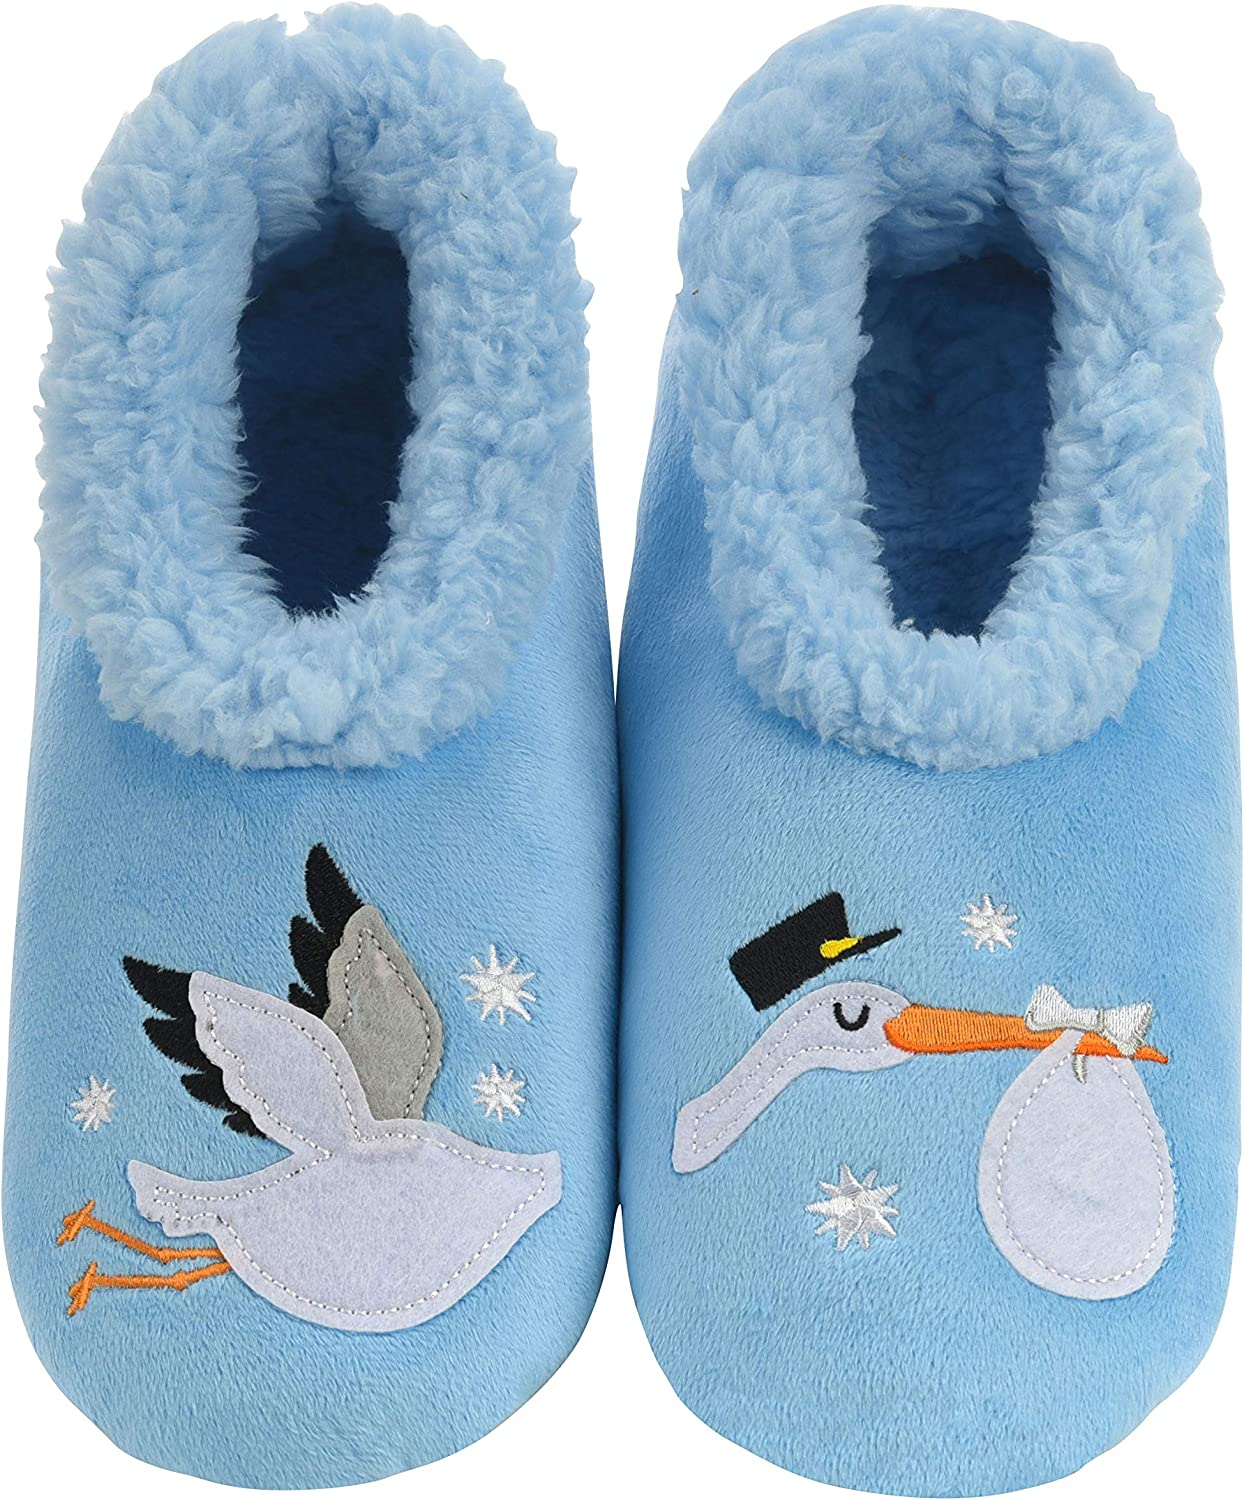 Snoozies Womens Slipper Socks - Gender Reveal Slippers - Cozy Slippers for Women - Fuzzy House Slippers for Indoor Use - Soft Sole Slipper